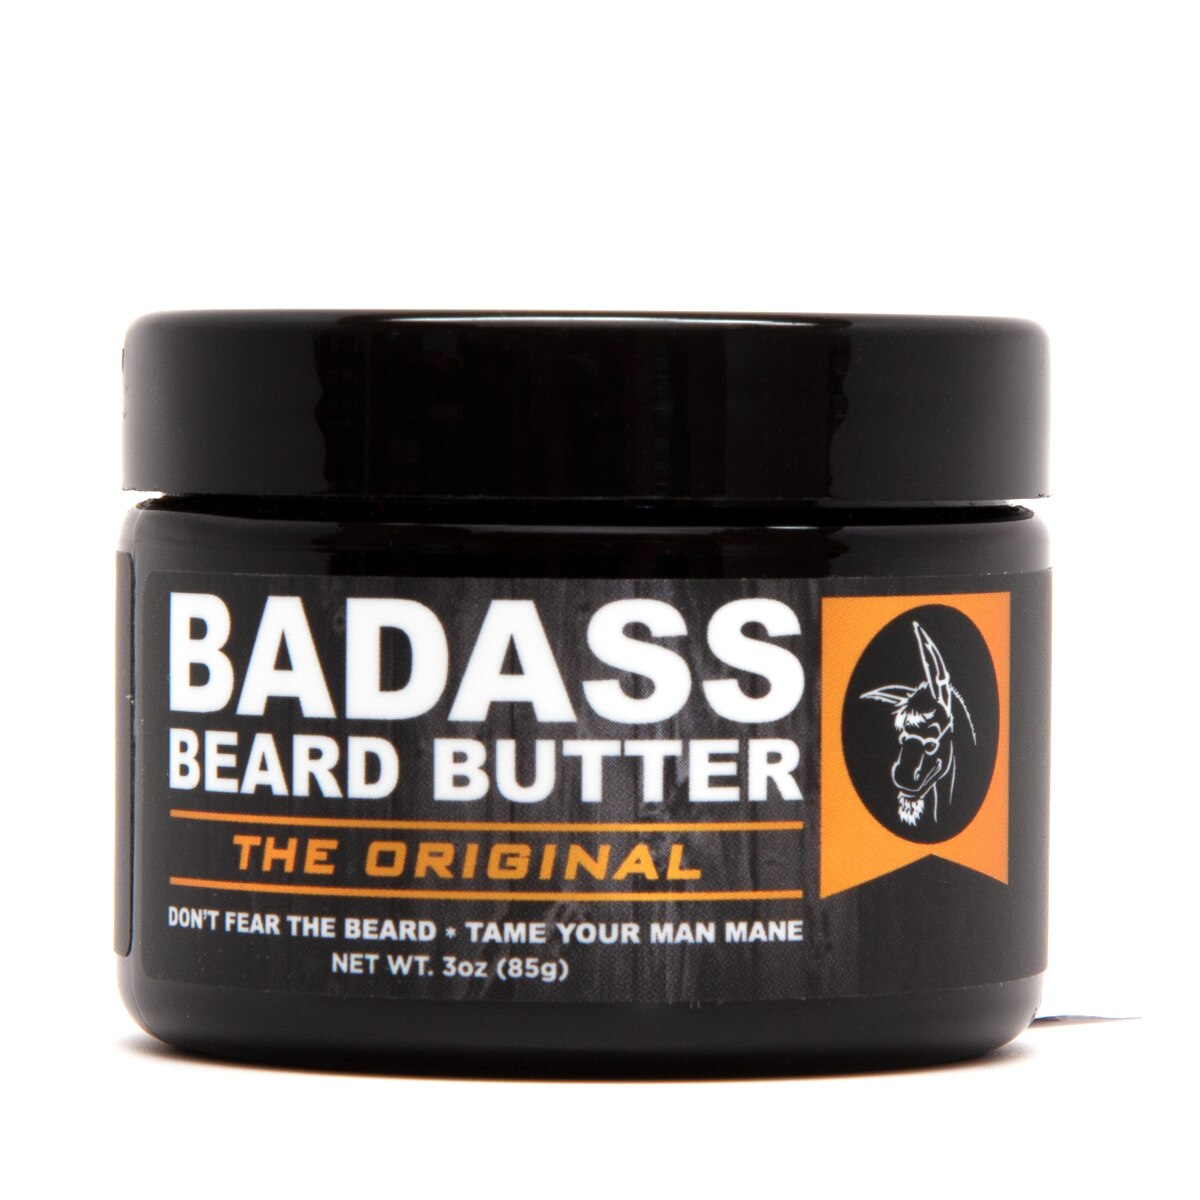 The Original Badass Beard Butter